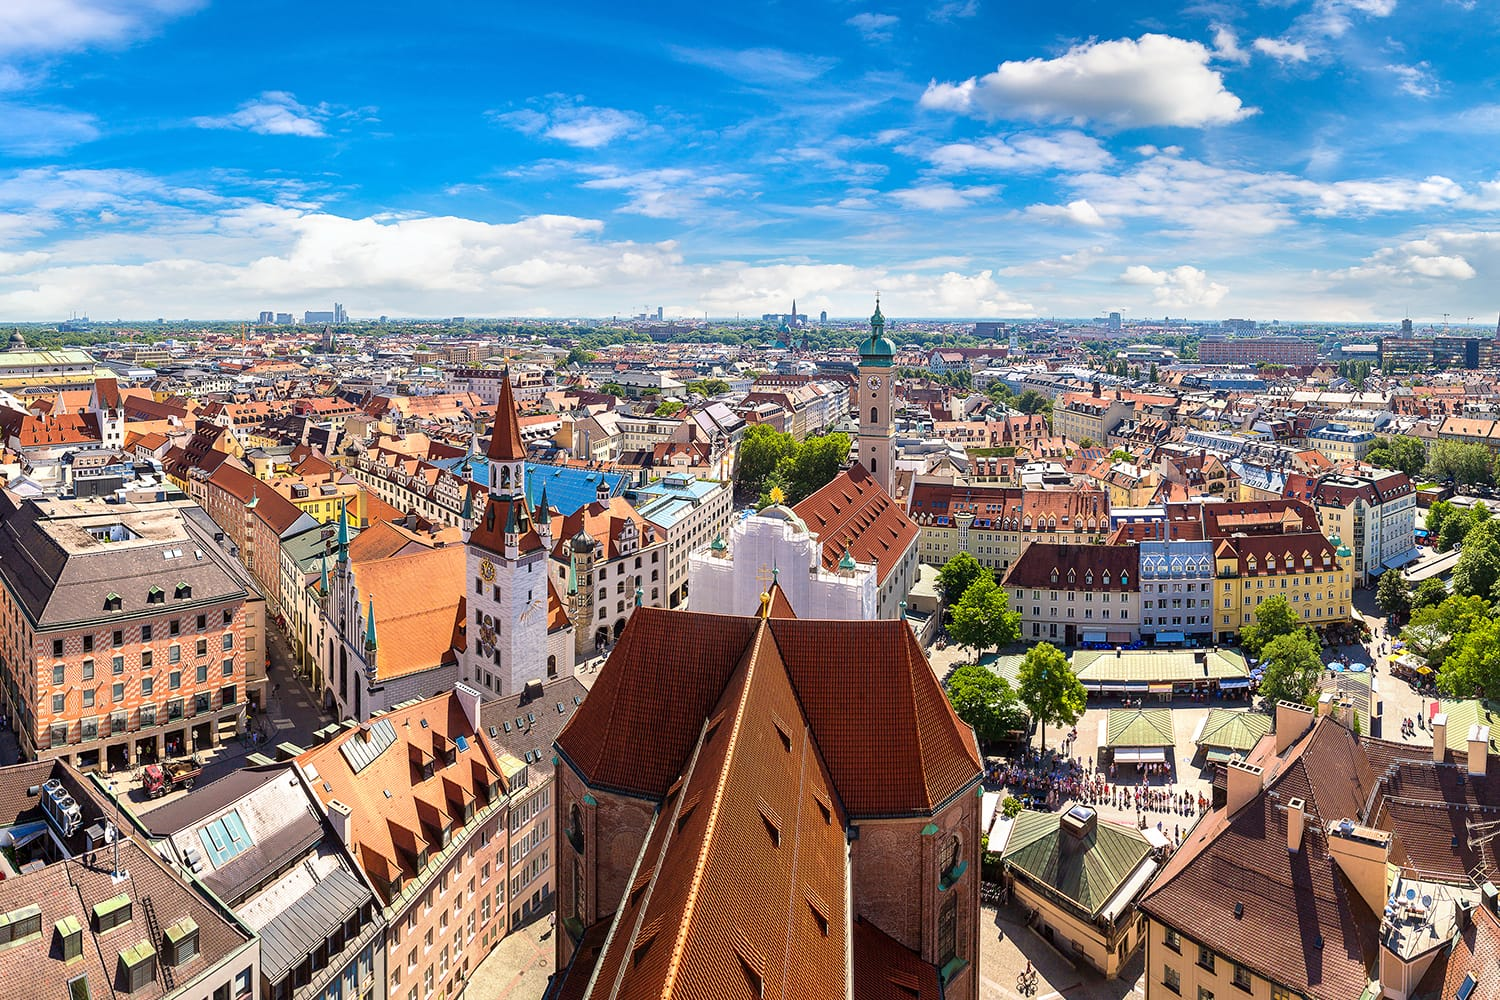 Aerial view of Munich, Germany as seen from St. Peter's Church